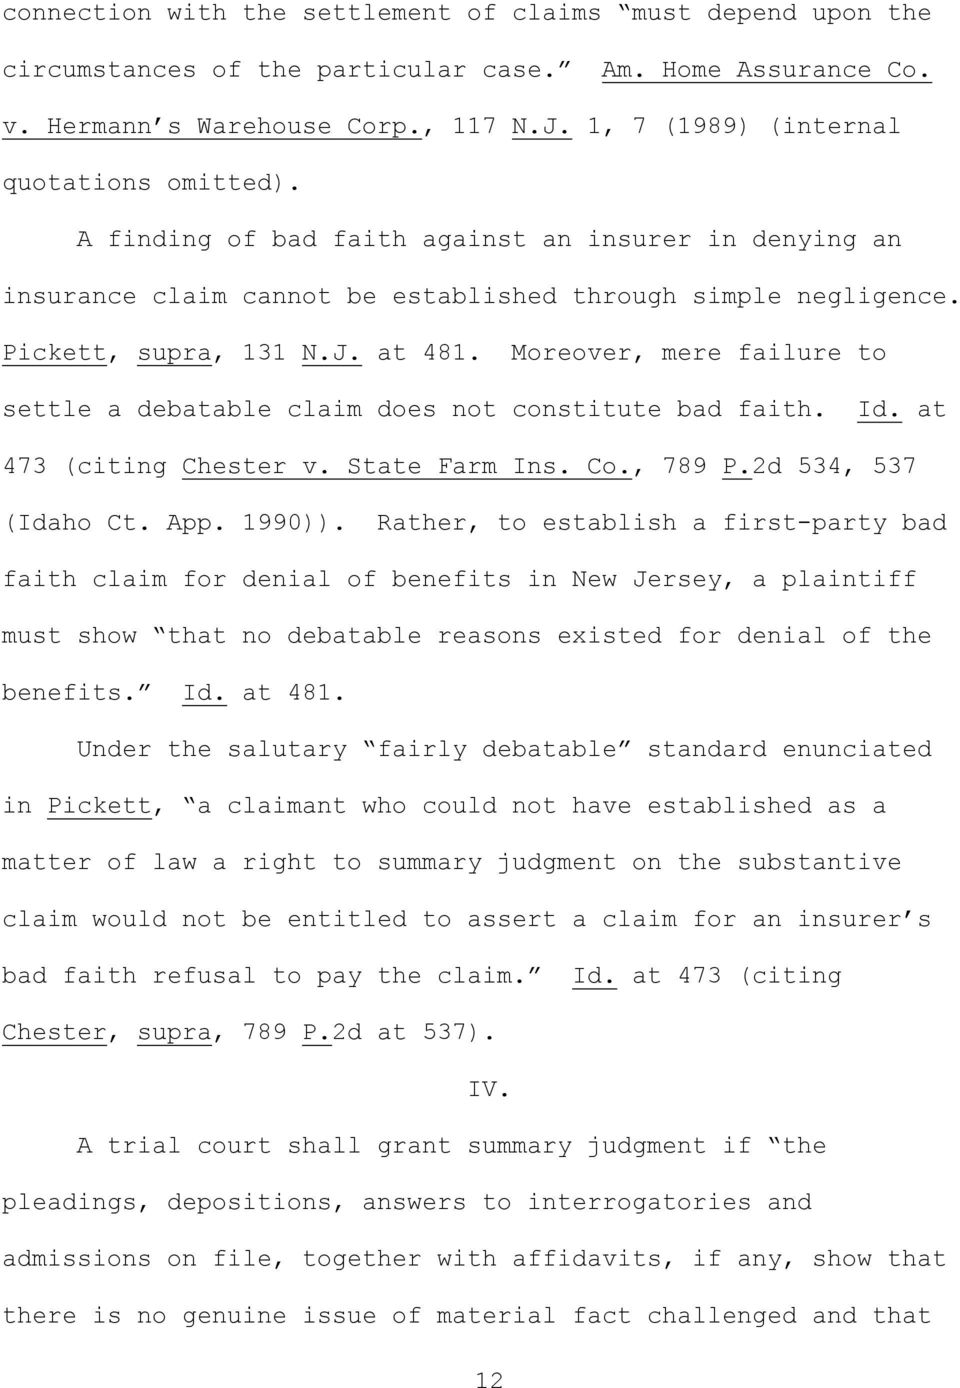 Moreover, mere failure to settle a debatable claim does not constitute bad faith. Id. at 473 (citing Chester v. State Farm Ins. Co., 789 P.2d 534, 537 (Idaho Ct. App. 1990)).